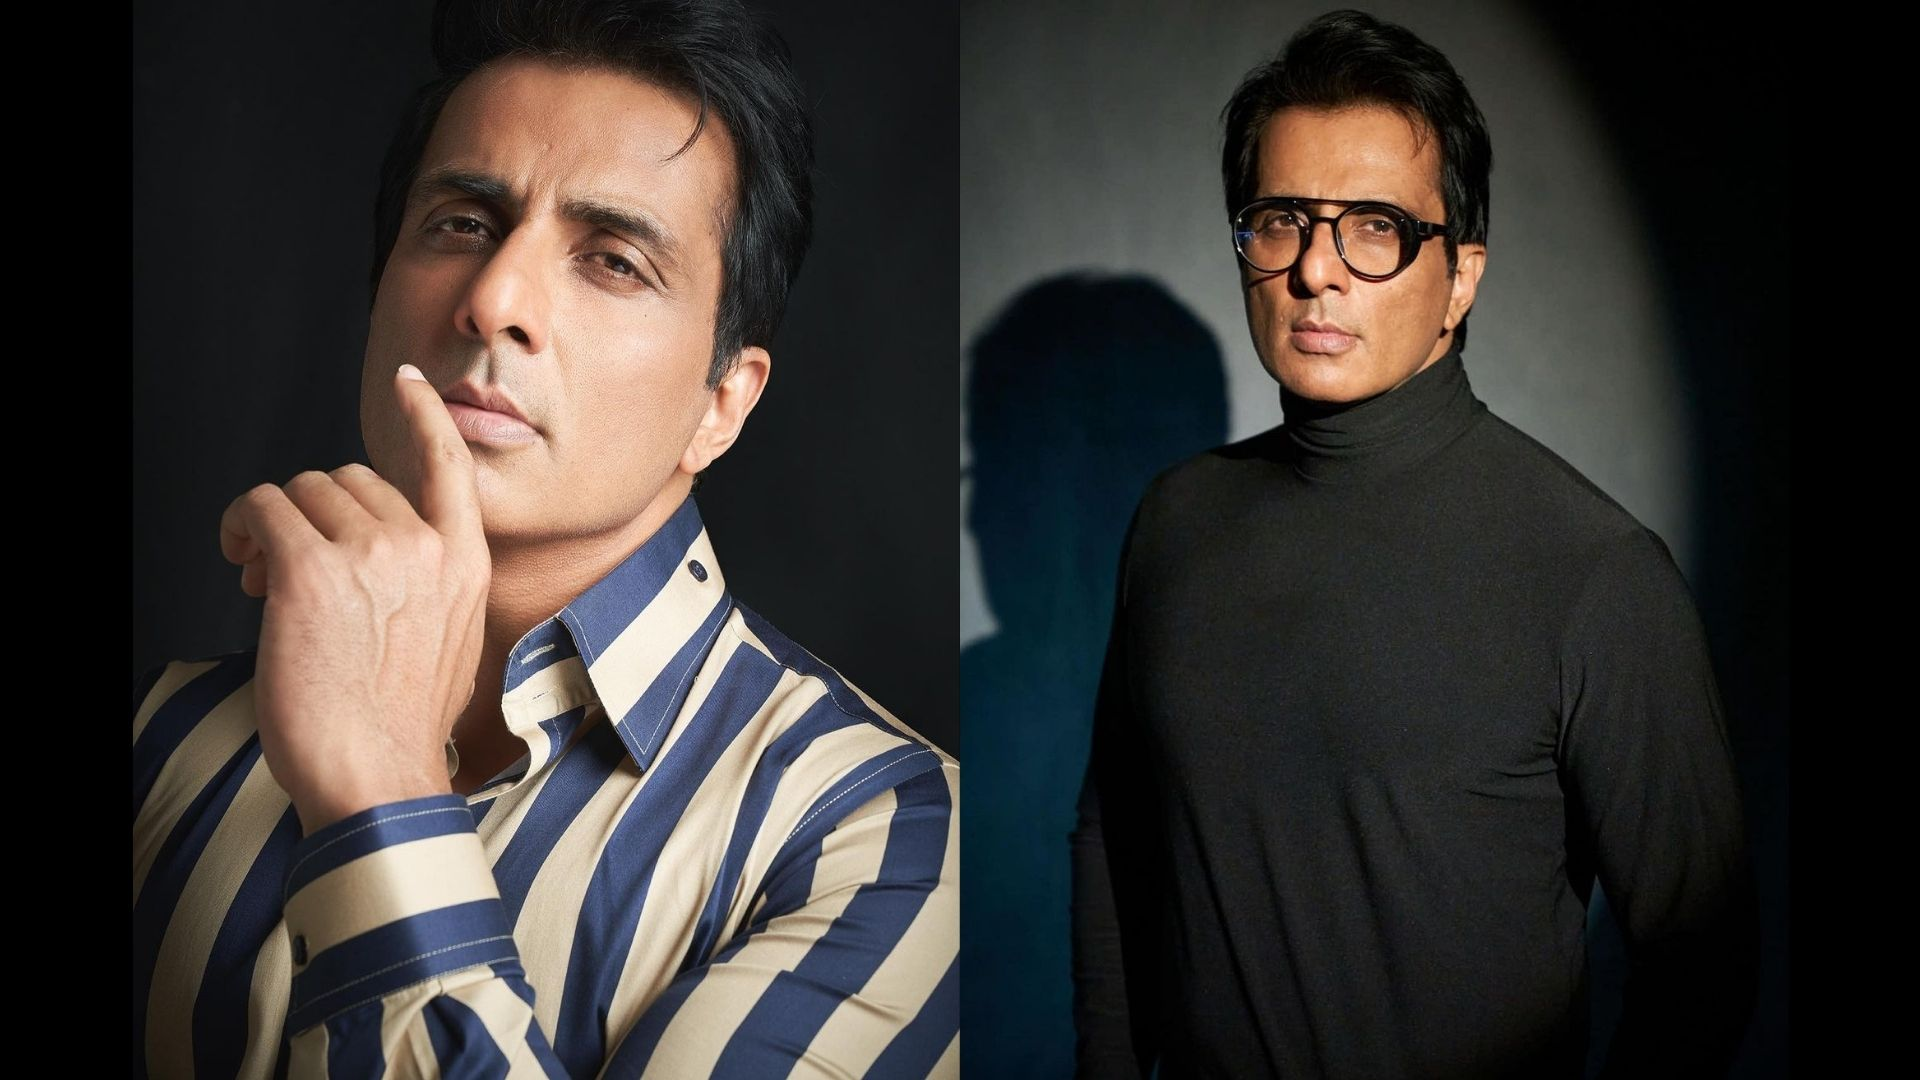 Sonu Sood BREAKS His Silence On Rs 20 Crore Tax Evasion Allegations; Releases A Statement Saying, 'Every Rupee In My Foundation Is Awaiting Its Turn To Save A Precious Life'